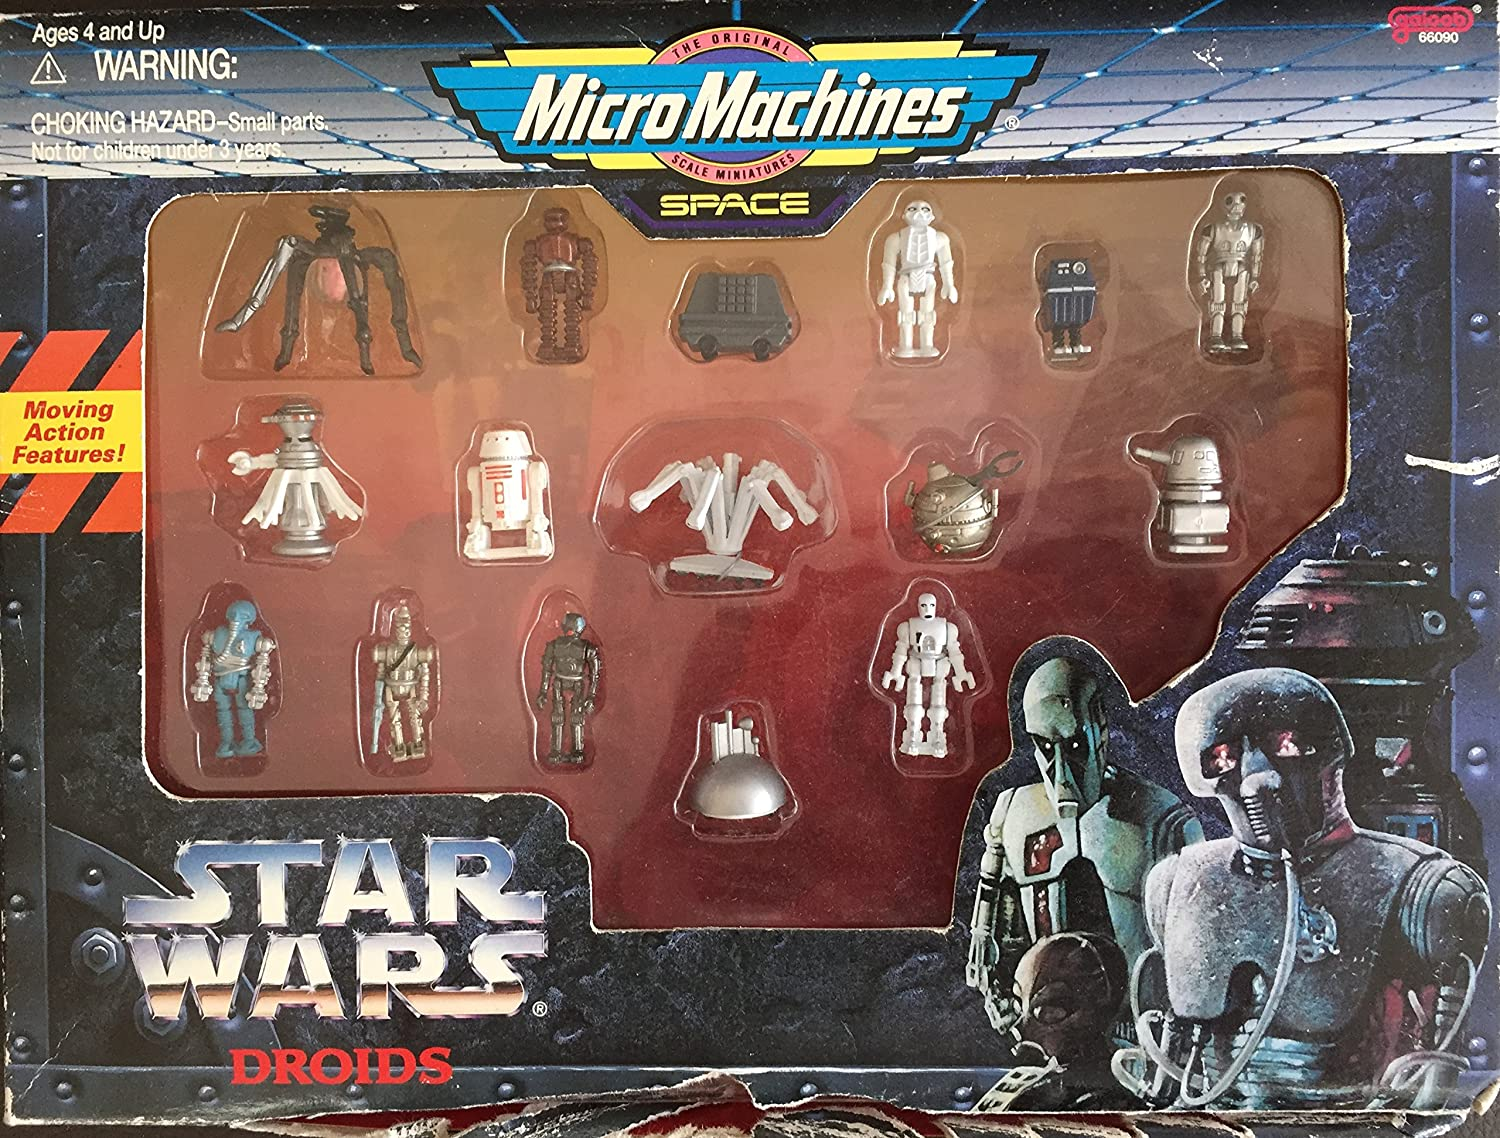 MICRO MACHINES STAR WARS FIGURE From the Droid set B/'Omarr Monk